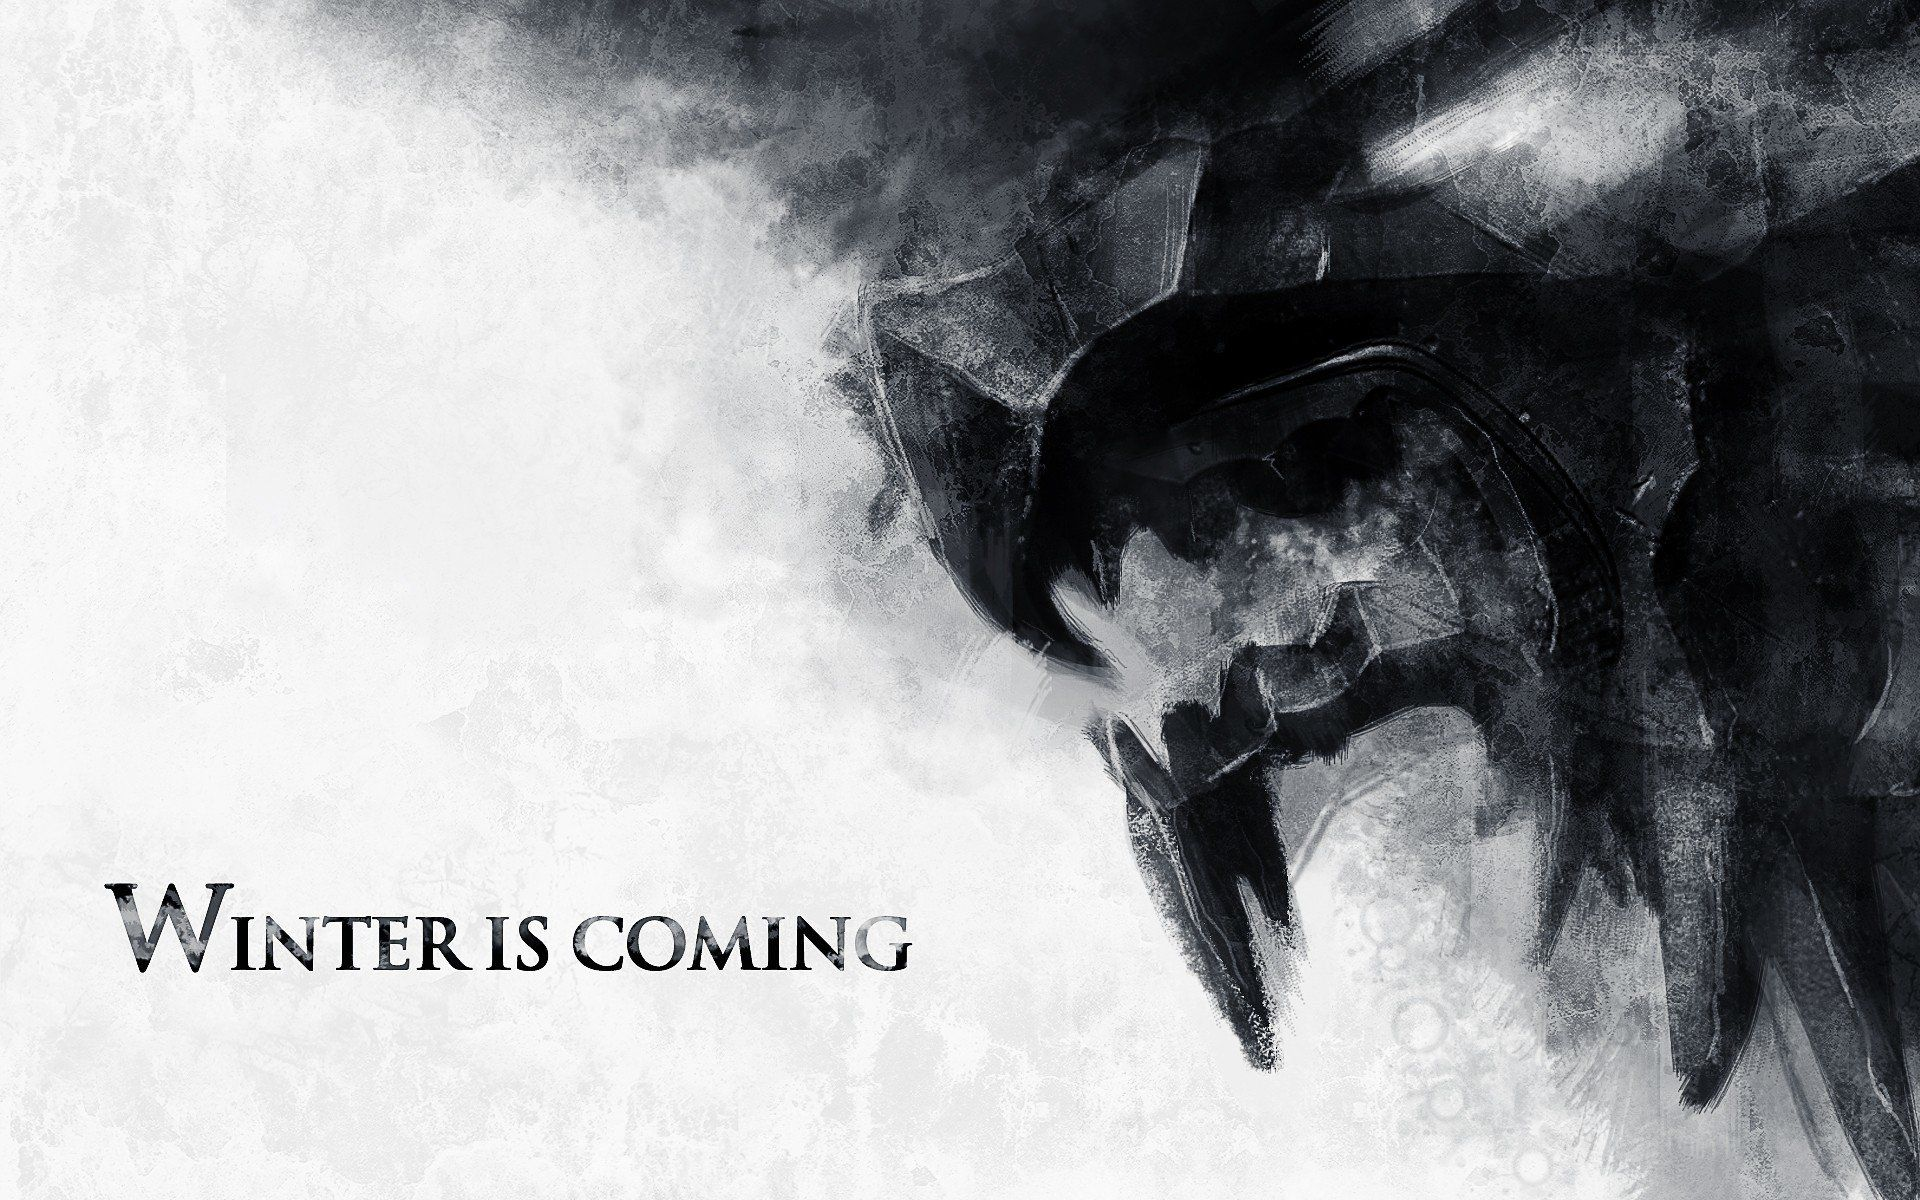 Tv Show Game Of Thrones Wallpaper In 2020 Winter Is Coming Wallpaper Winter Is Coming Stark Game Of Thrones Winter